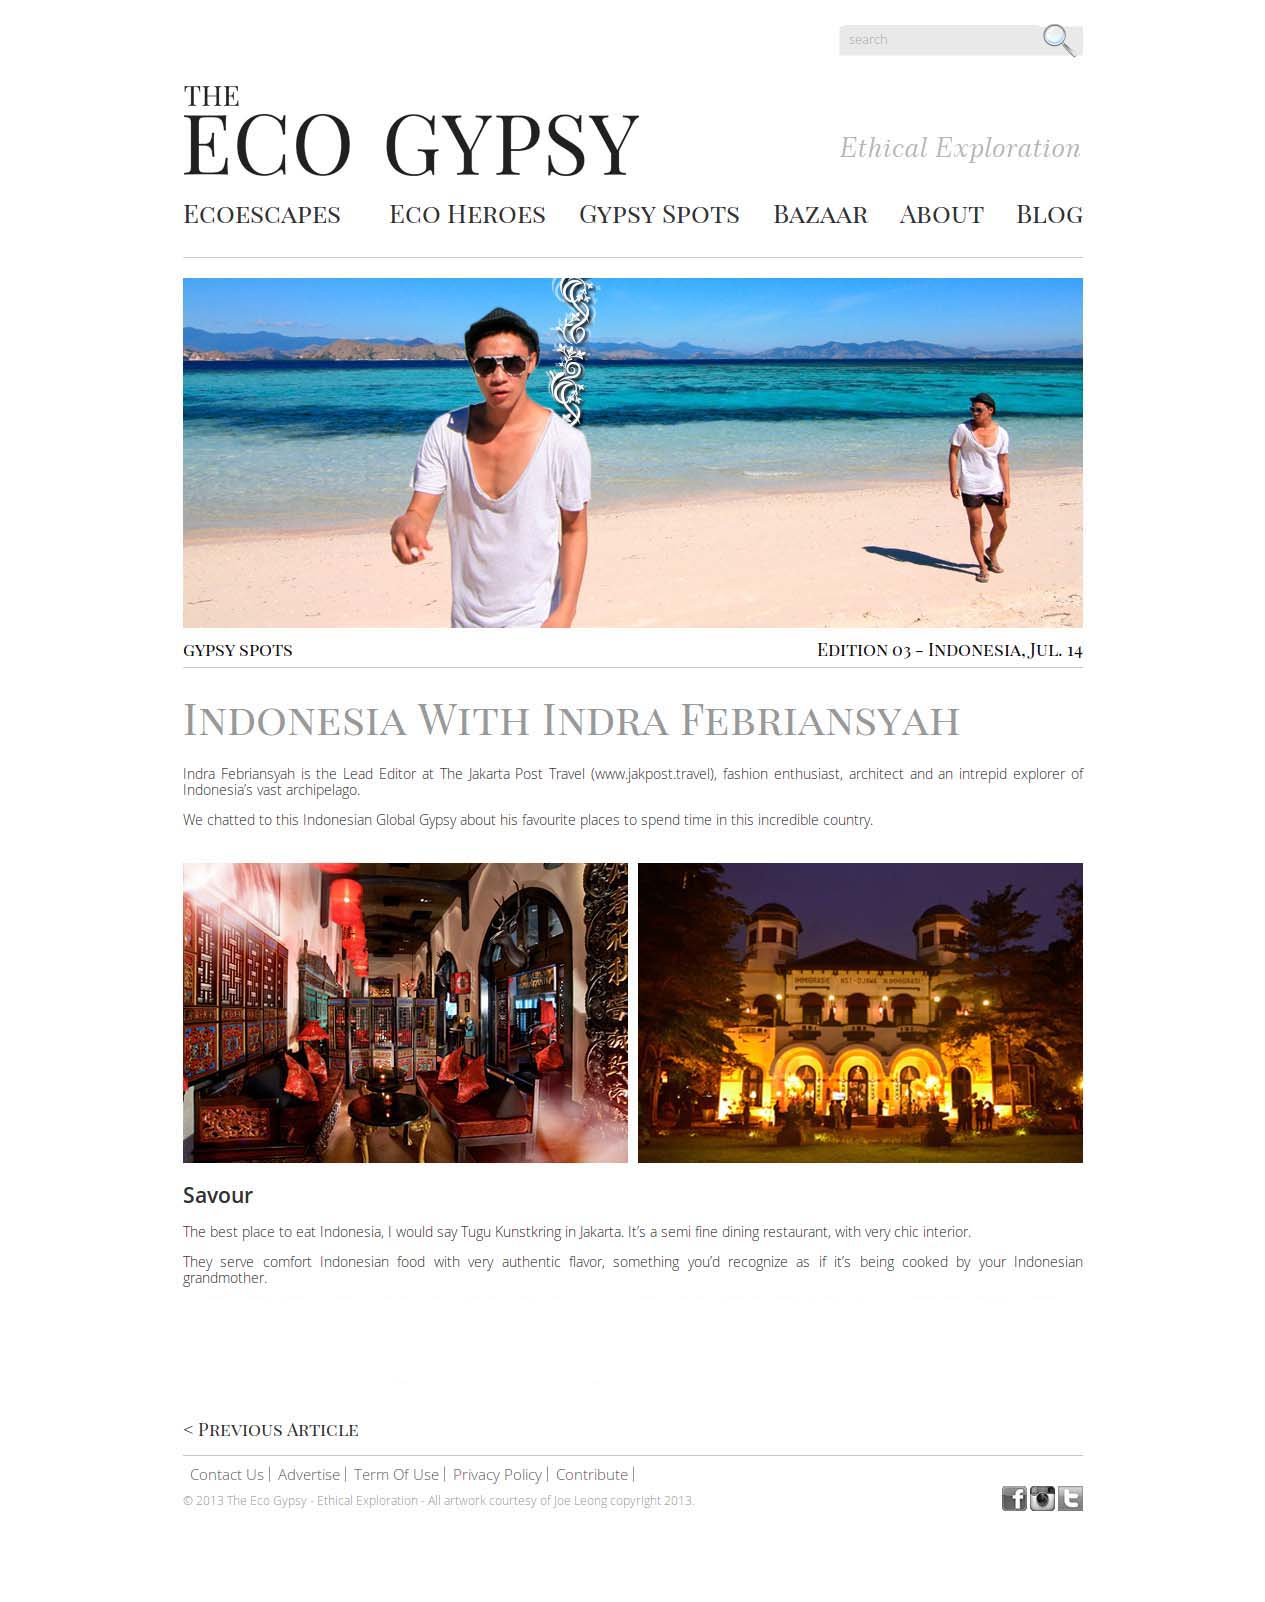 Indonesia With Indra Febriansyah - The Eco Gypsy - Ethical Exploration